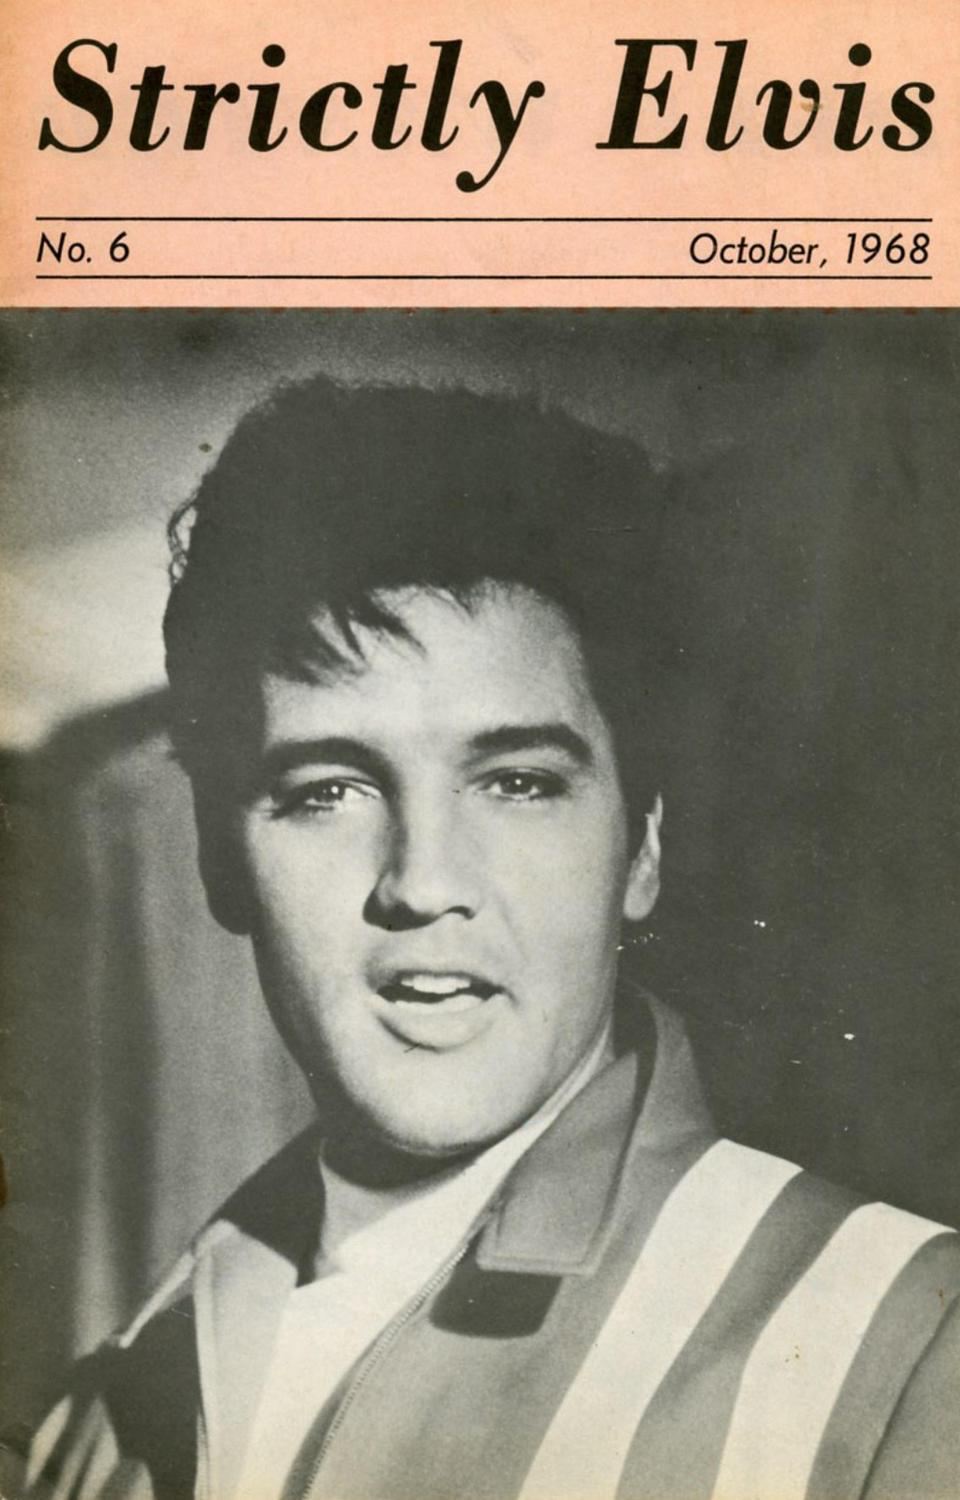 Strictly Elvis No. 6 October 1968 01